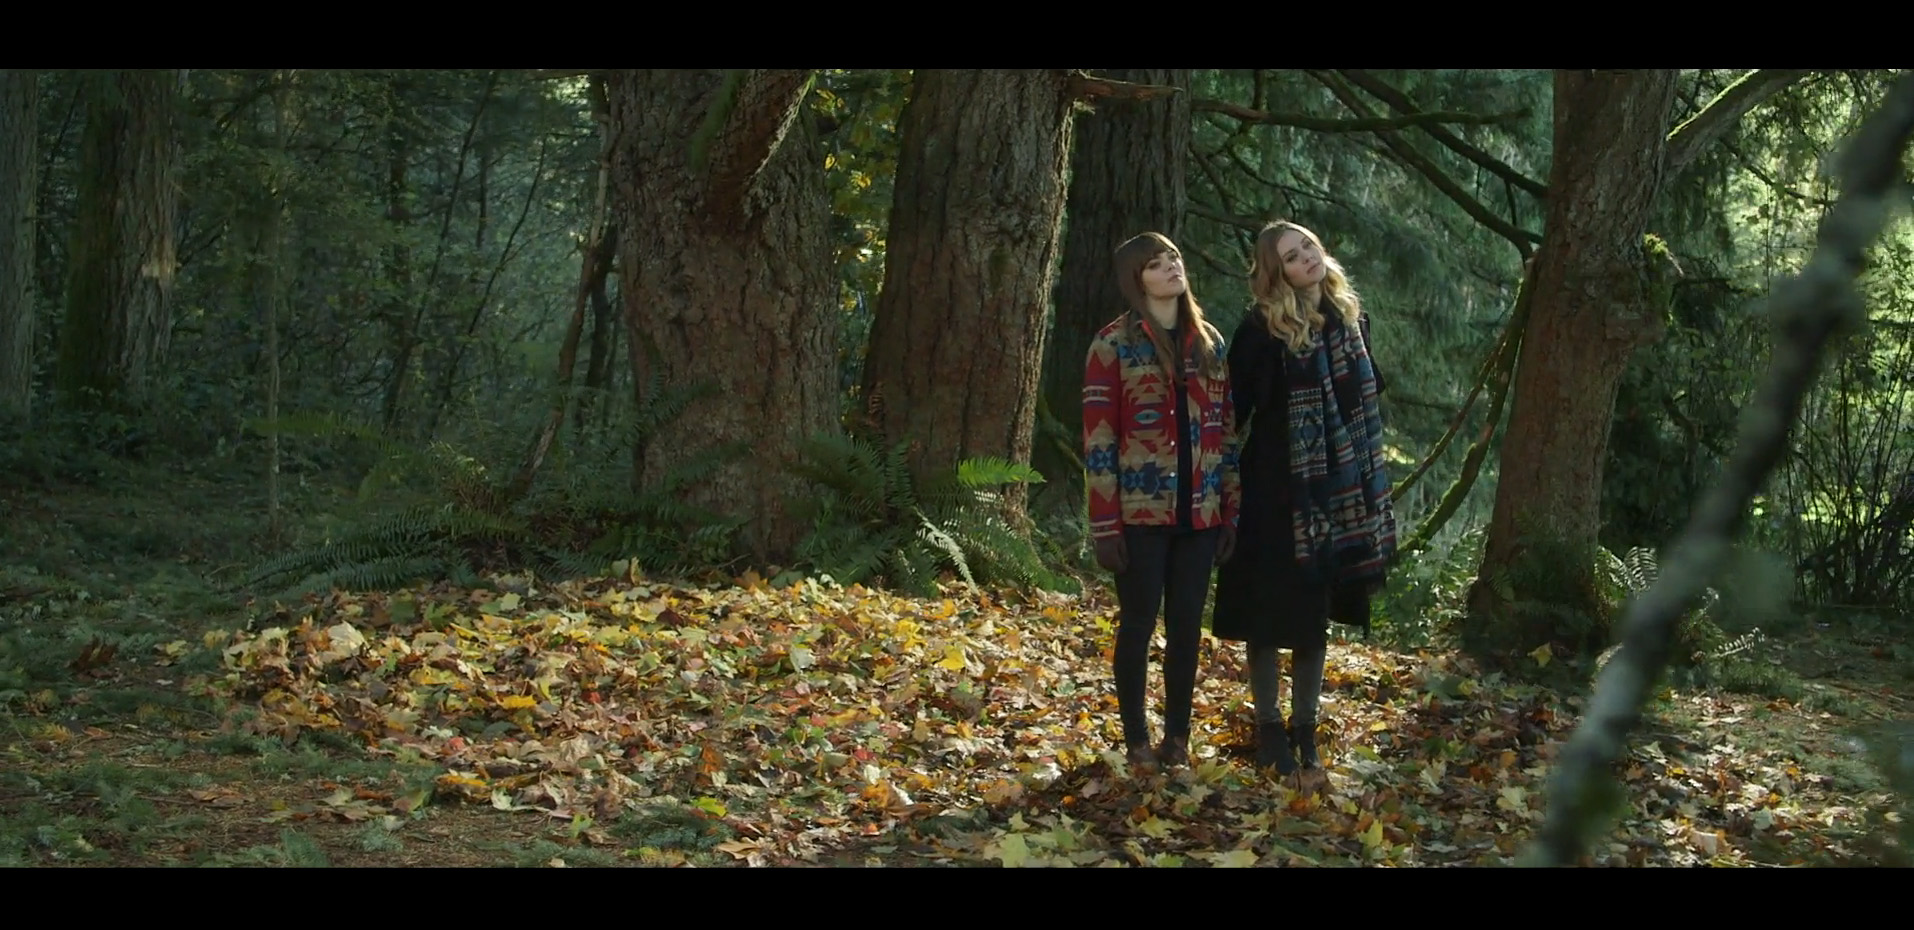 First Aid Kit screenshot of band members standing in the forest.